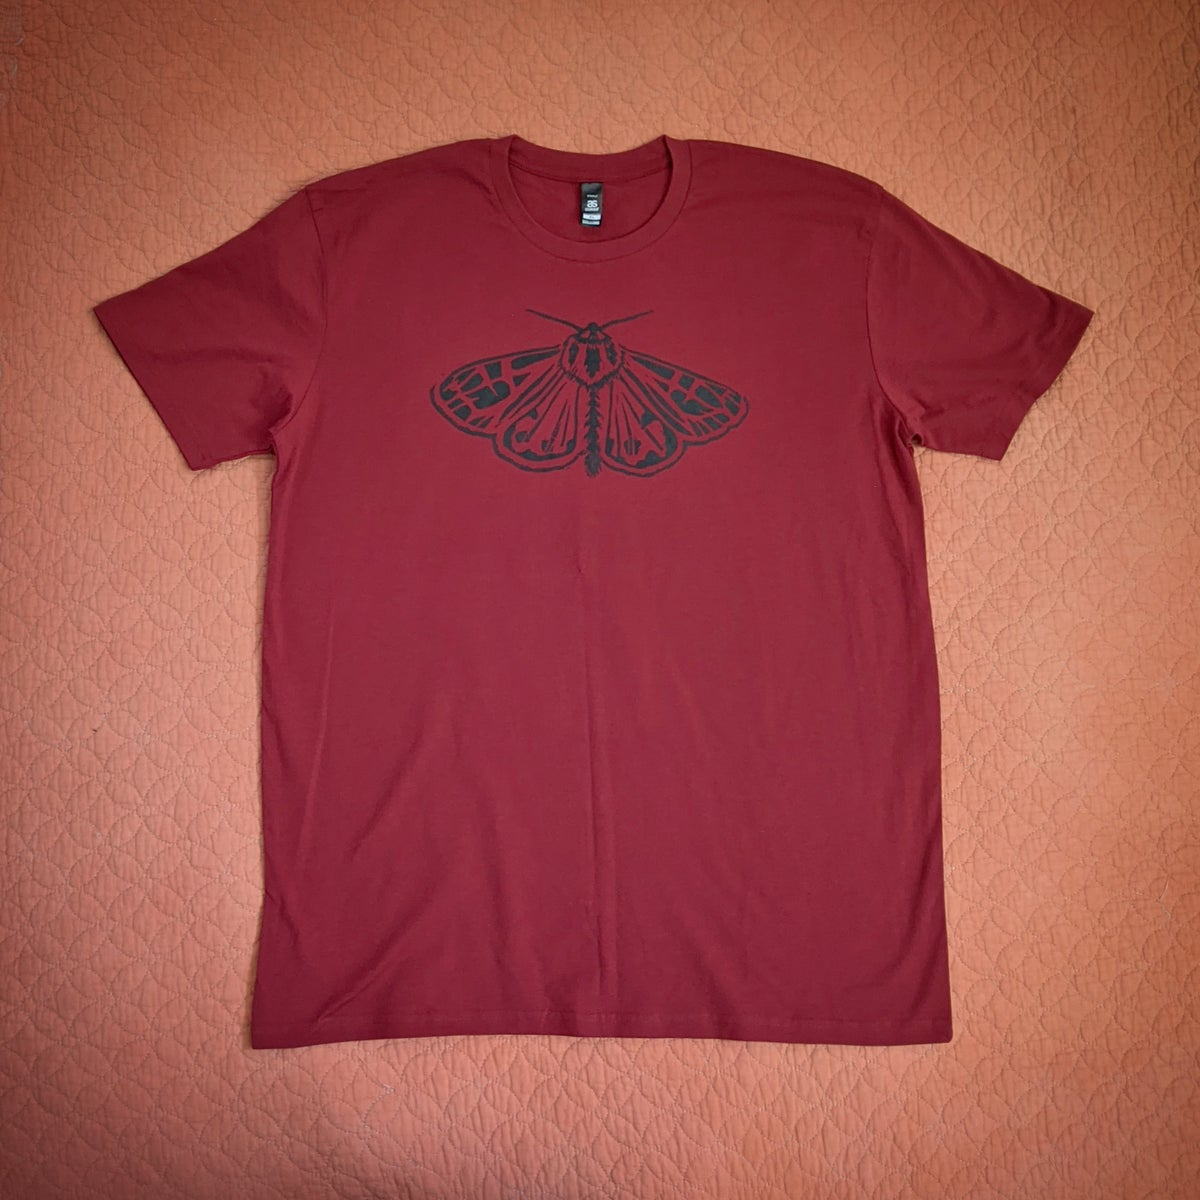 Image of Grown-Up T-Shirt - Moth - Sky, Charcoal or Deep Red